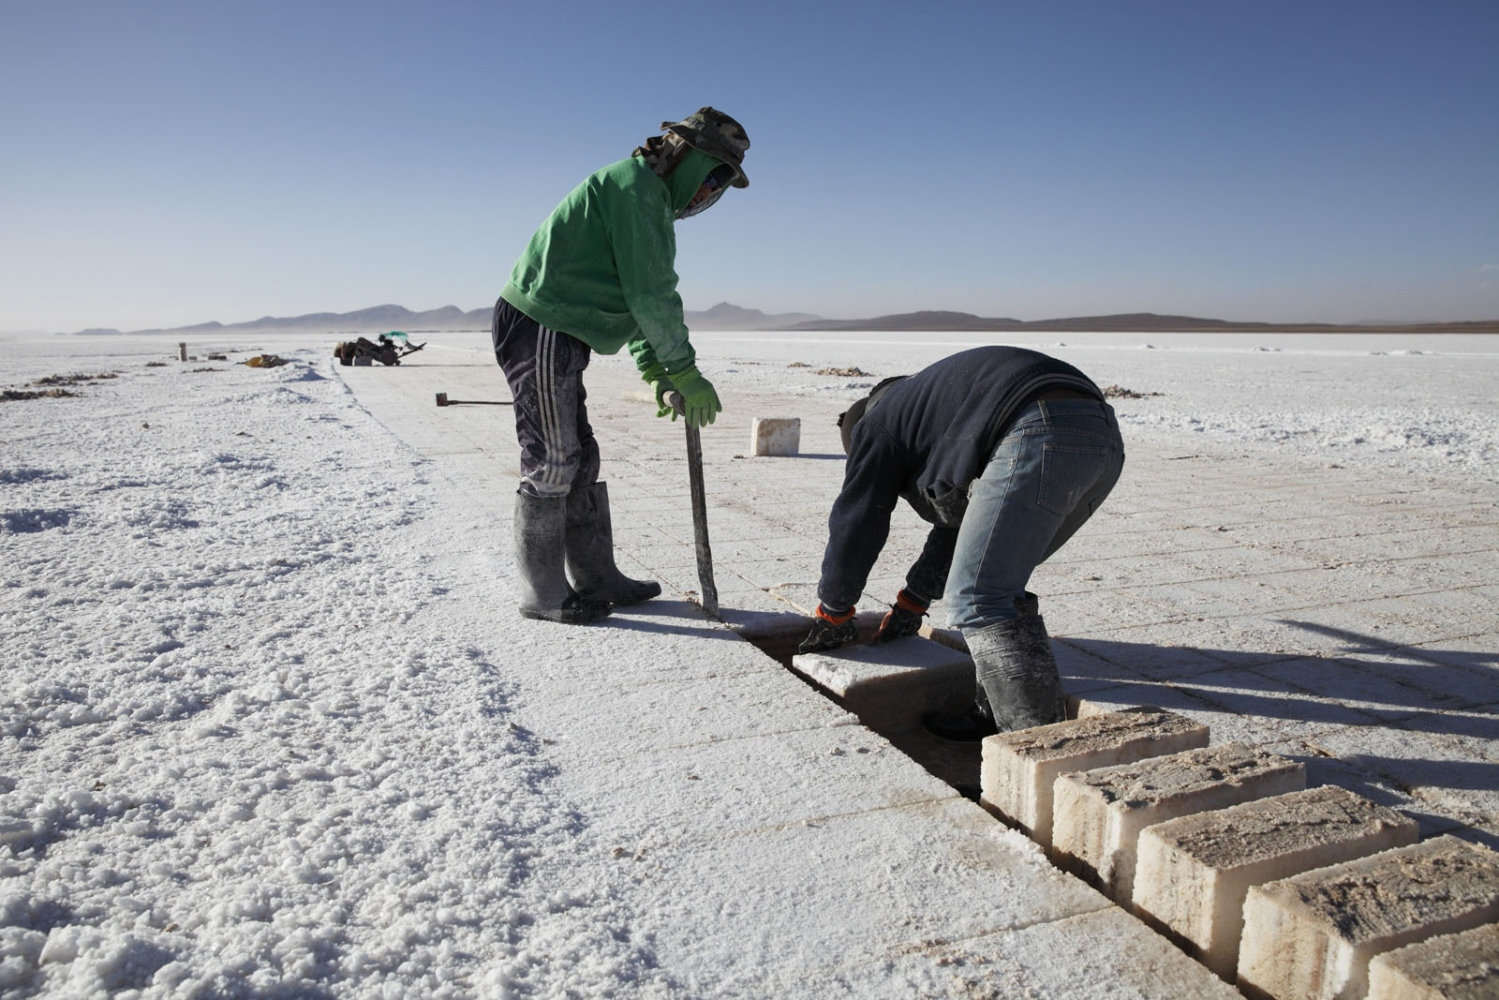 Salt workers use a saw to cut out salt bricks from the salt crust on the Salar de Uyuni, Bolivia.